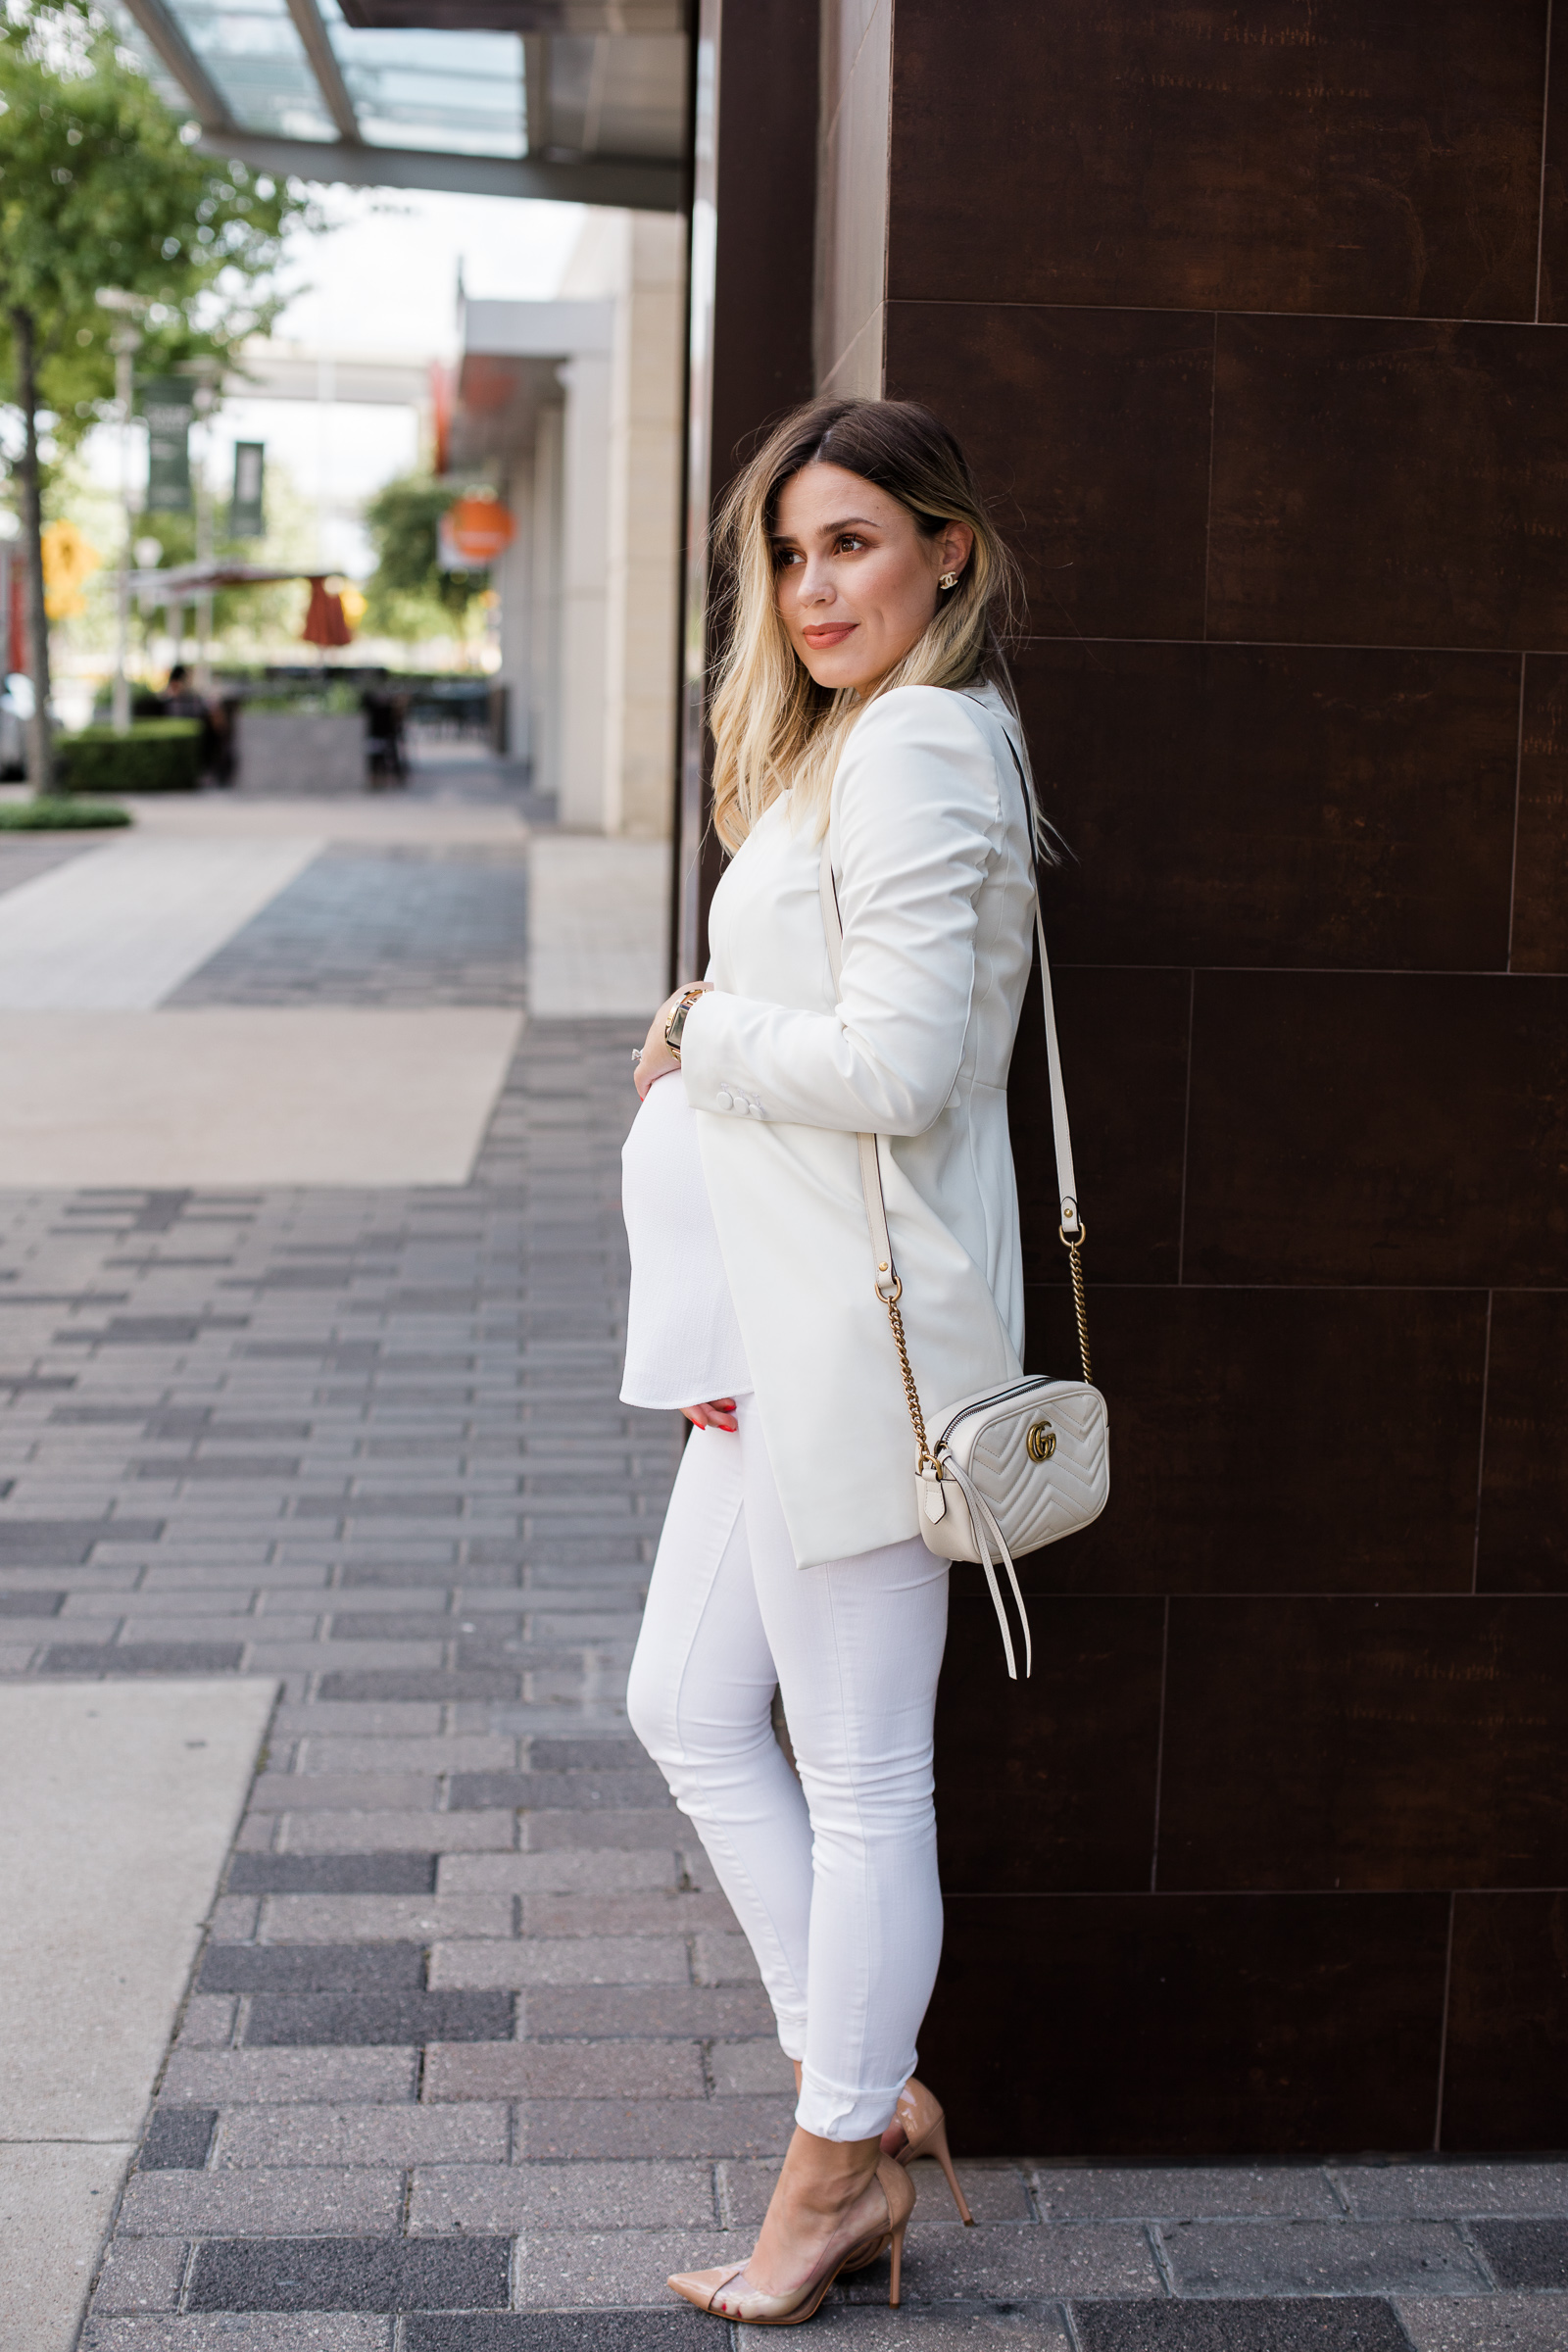 Houston fashion blogger Uptown with Elly Brown shares 2 All White Outfit ideas, and how to take it from day to night!